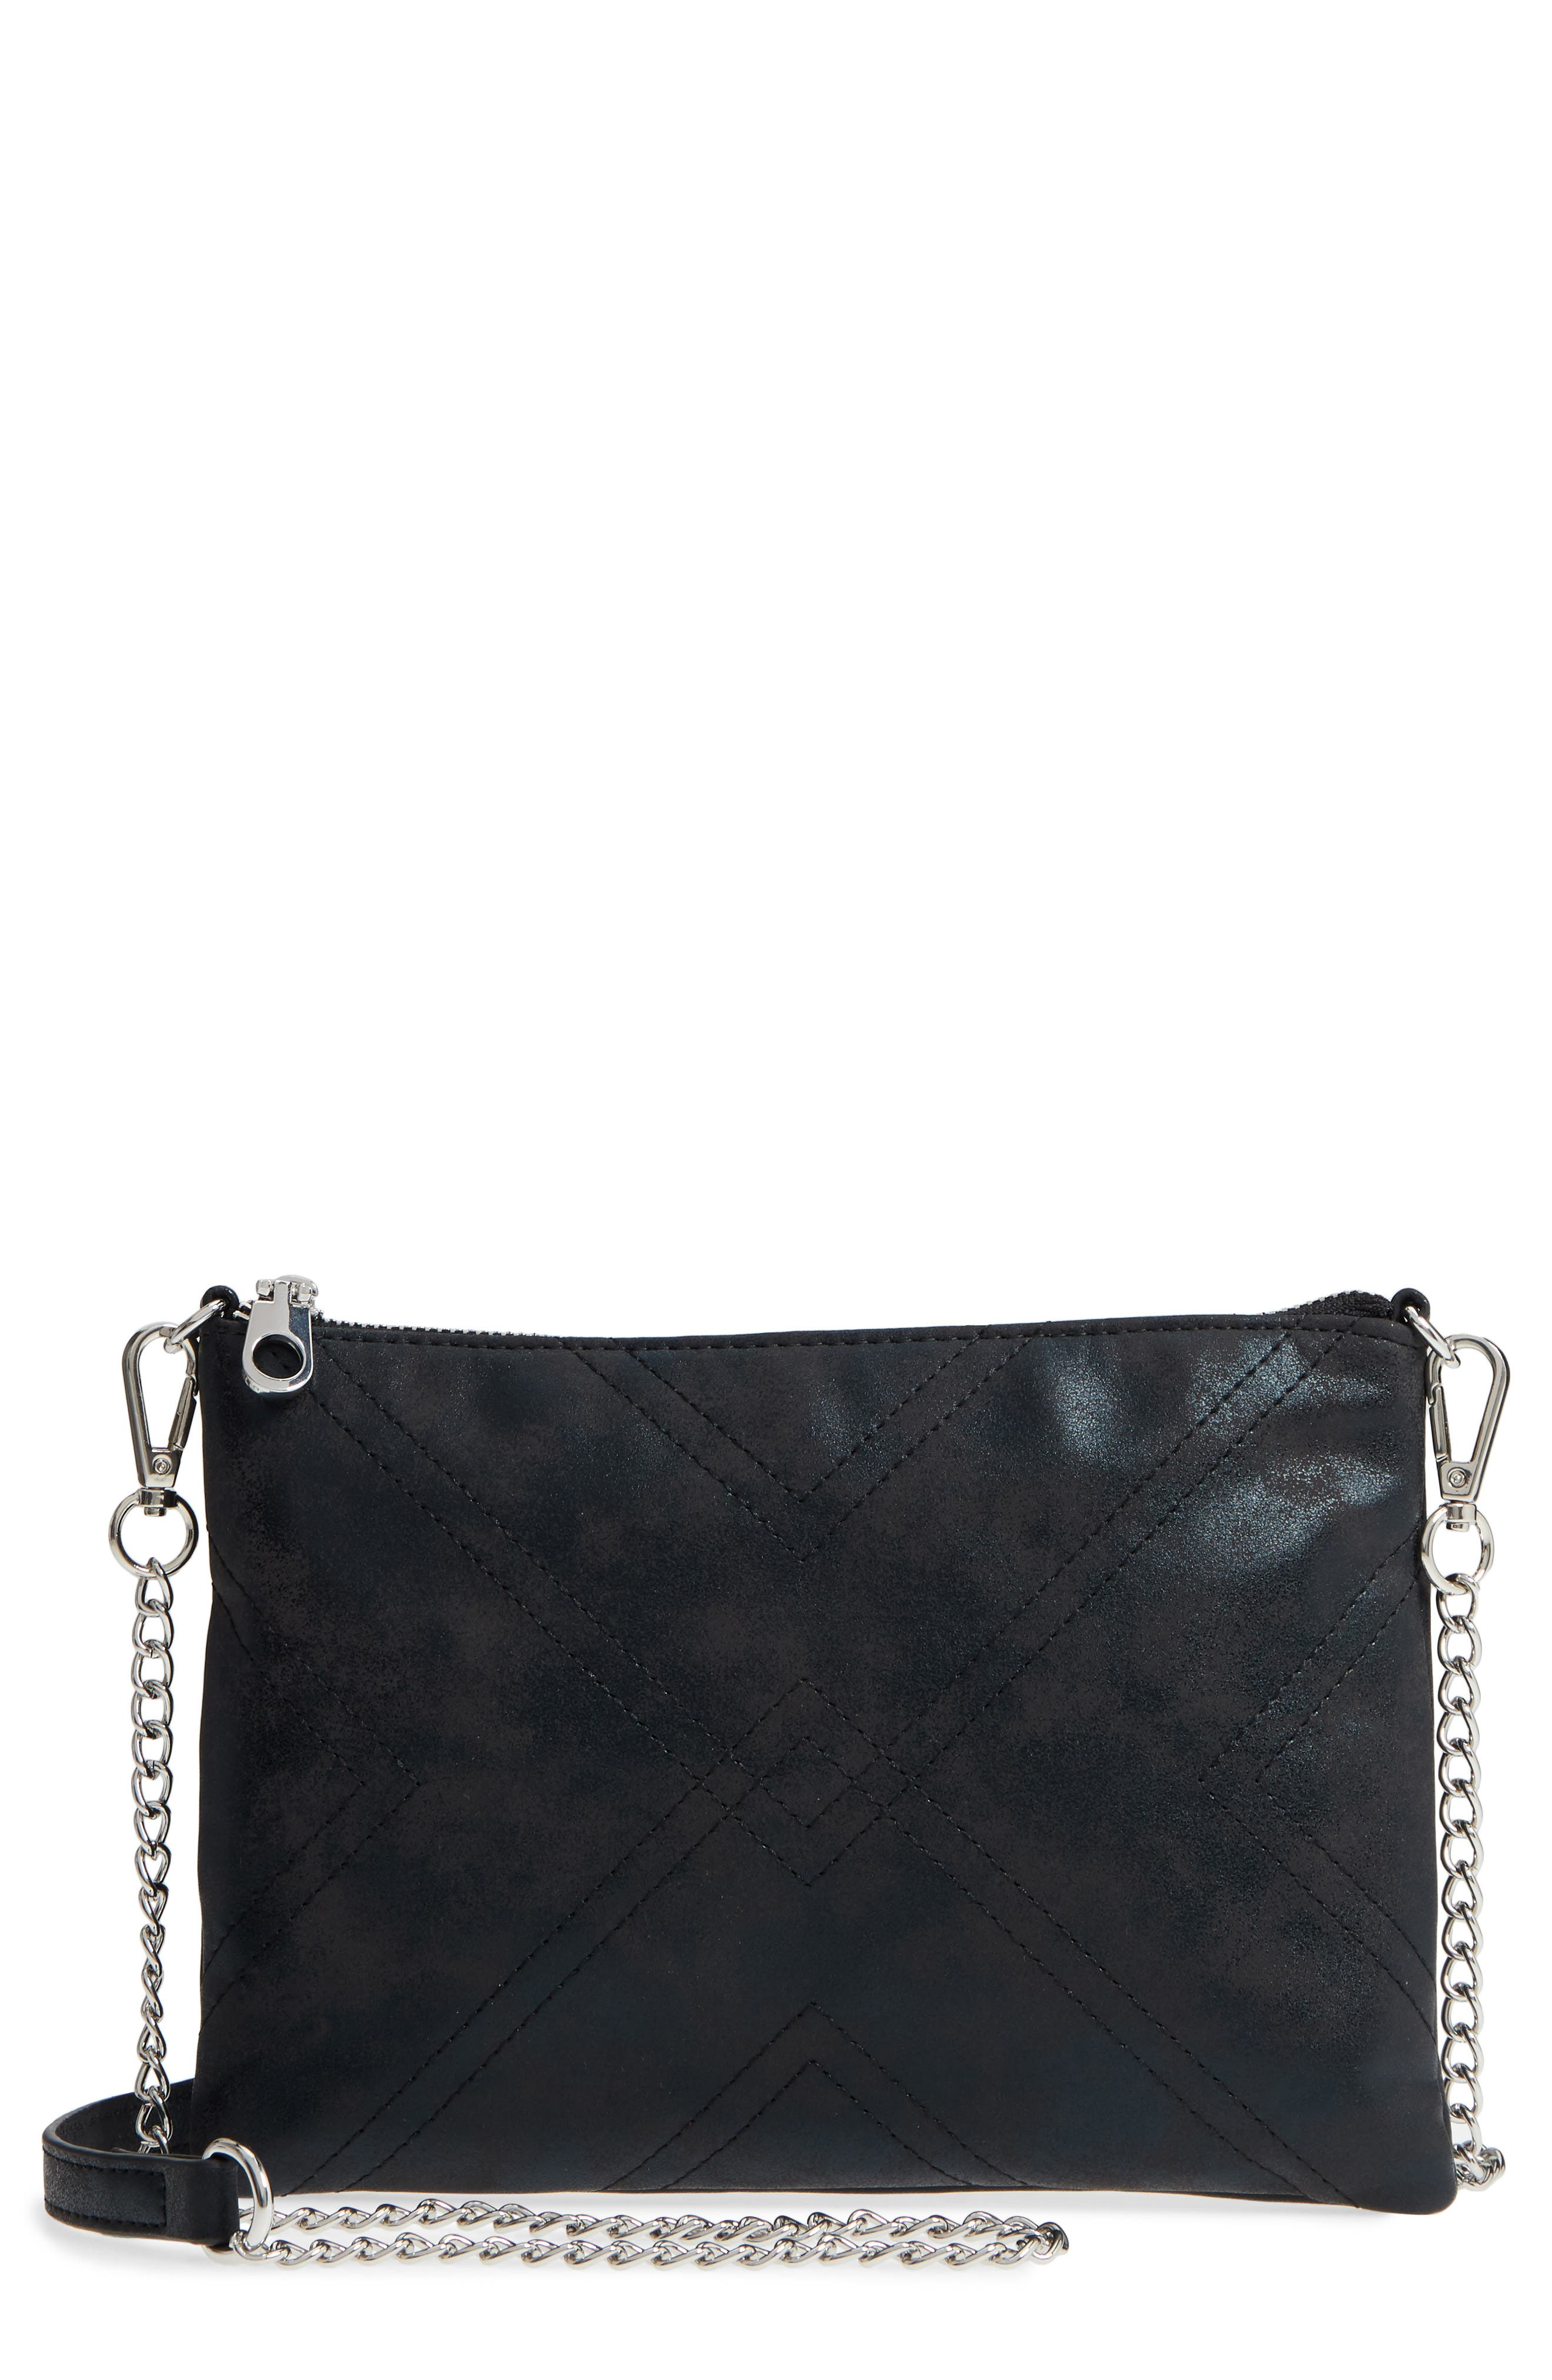 Astley Faux Leather Clutch,                             Main thumbnail 1, color,                             Black